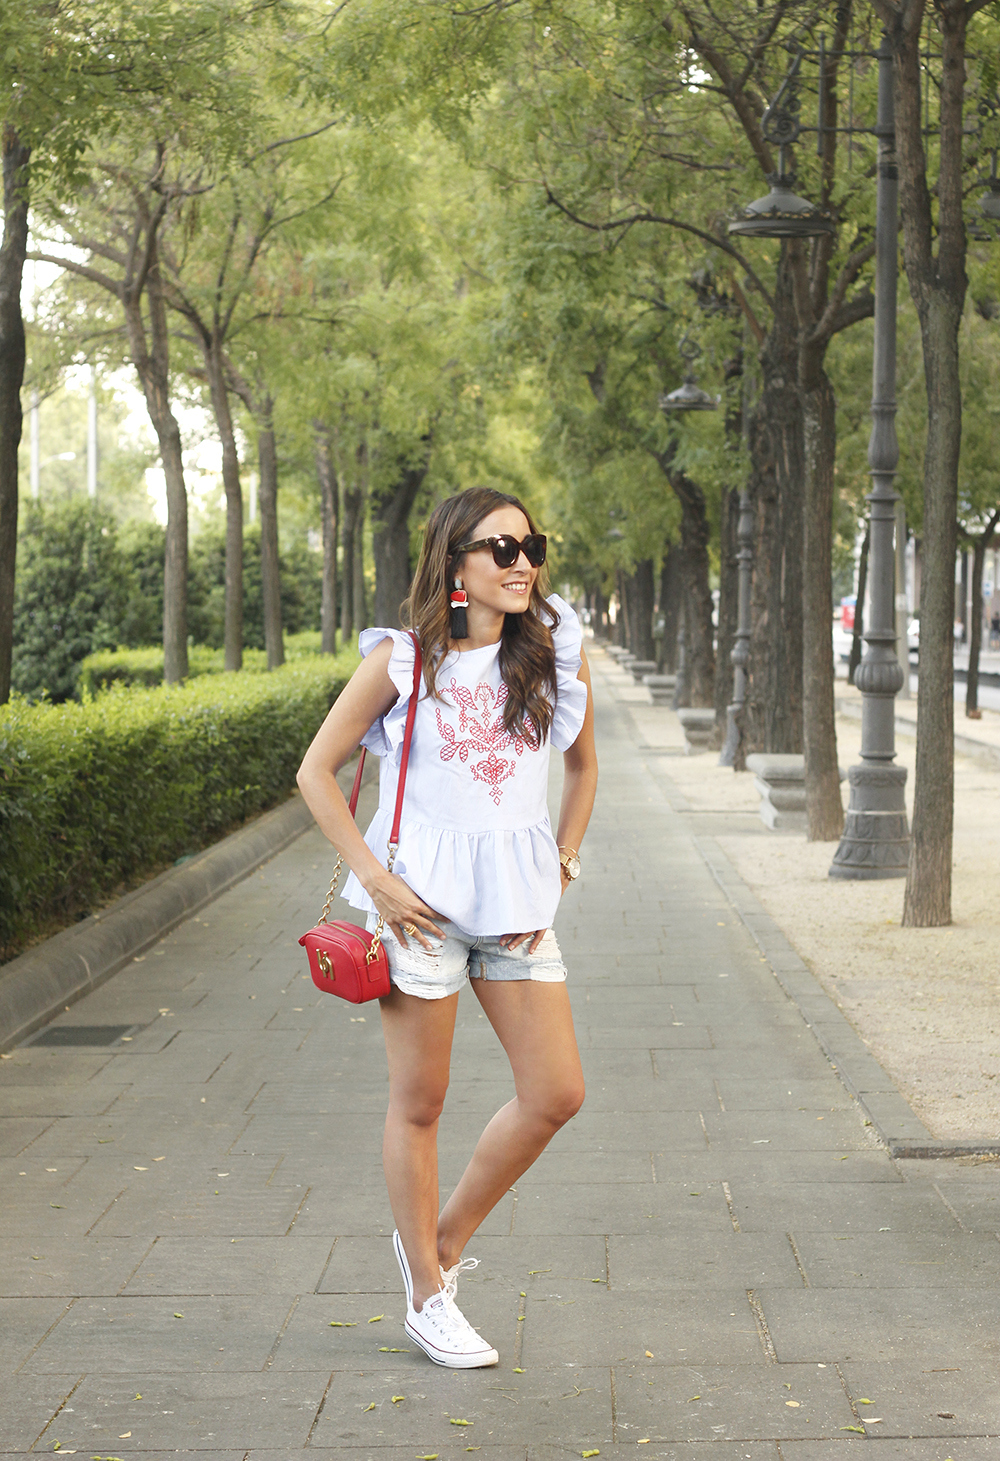 striped top with frills casual outfit summer denim shorts red fashion style10